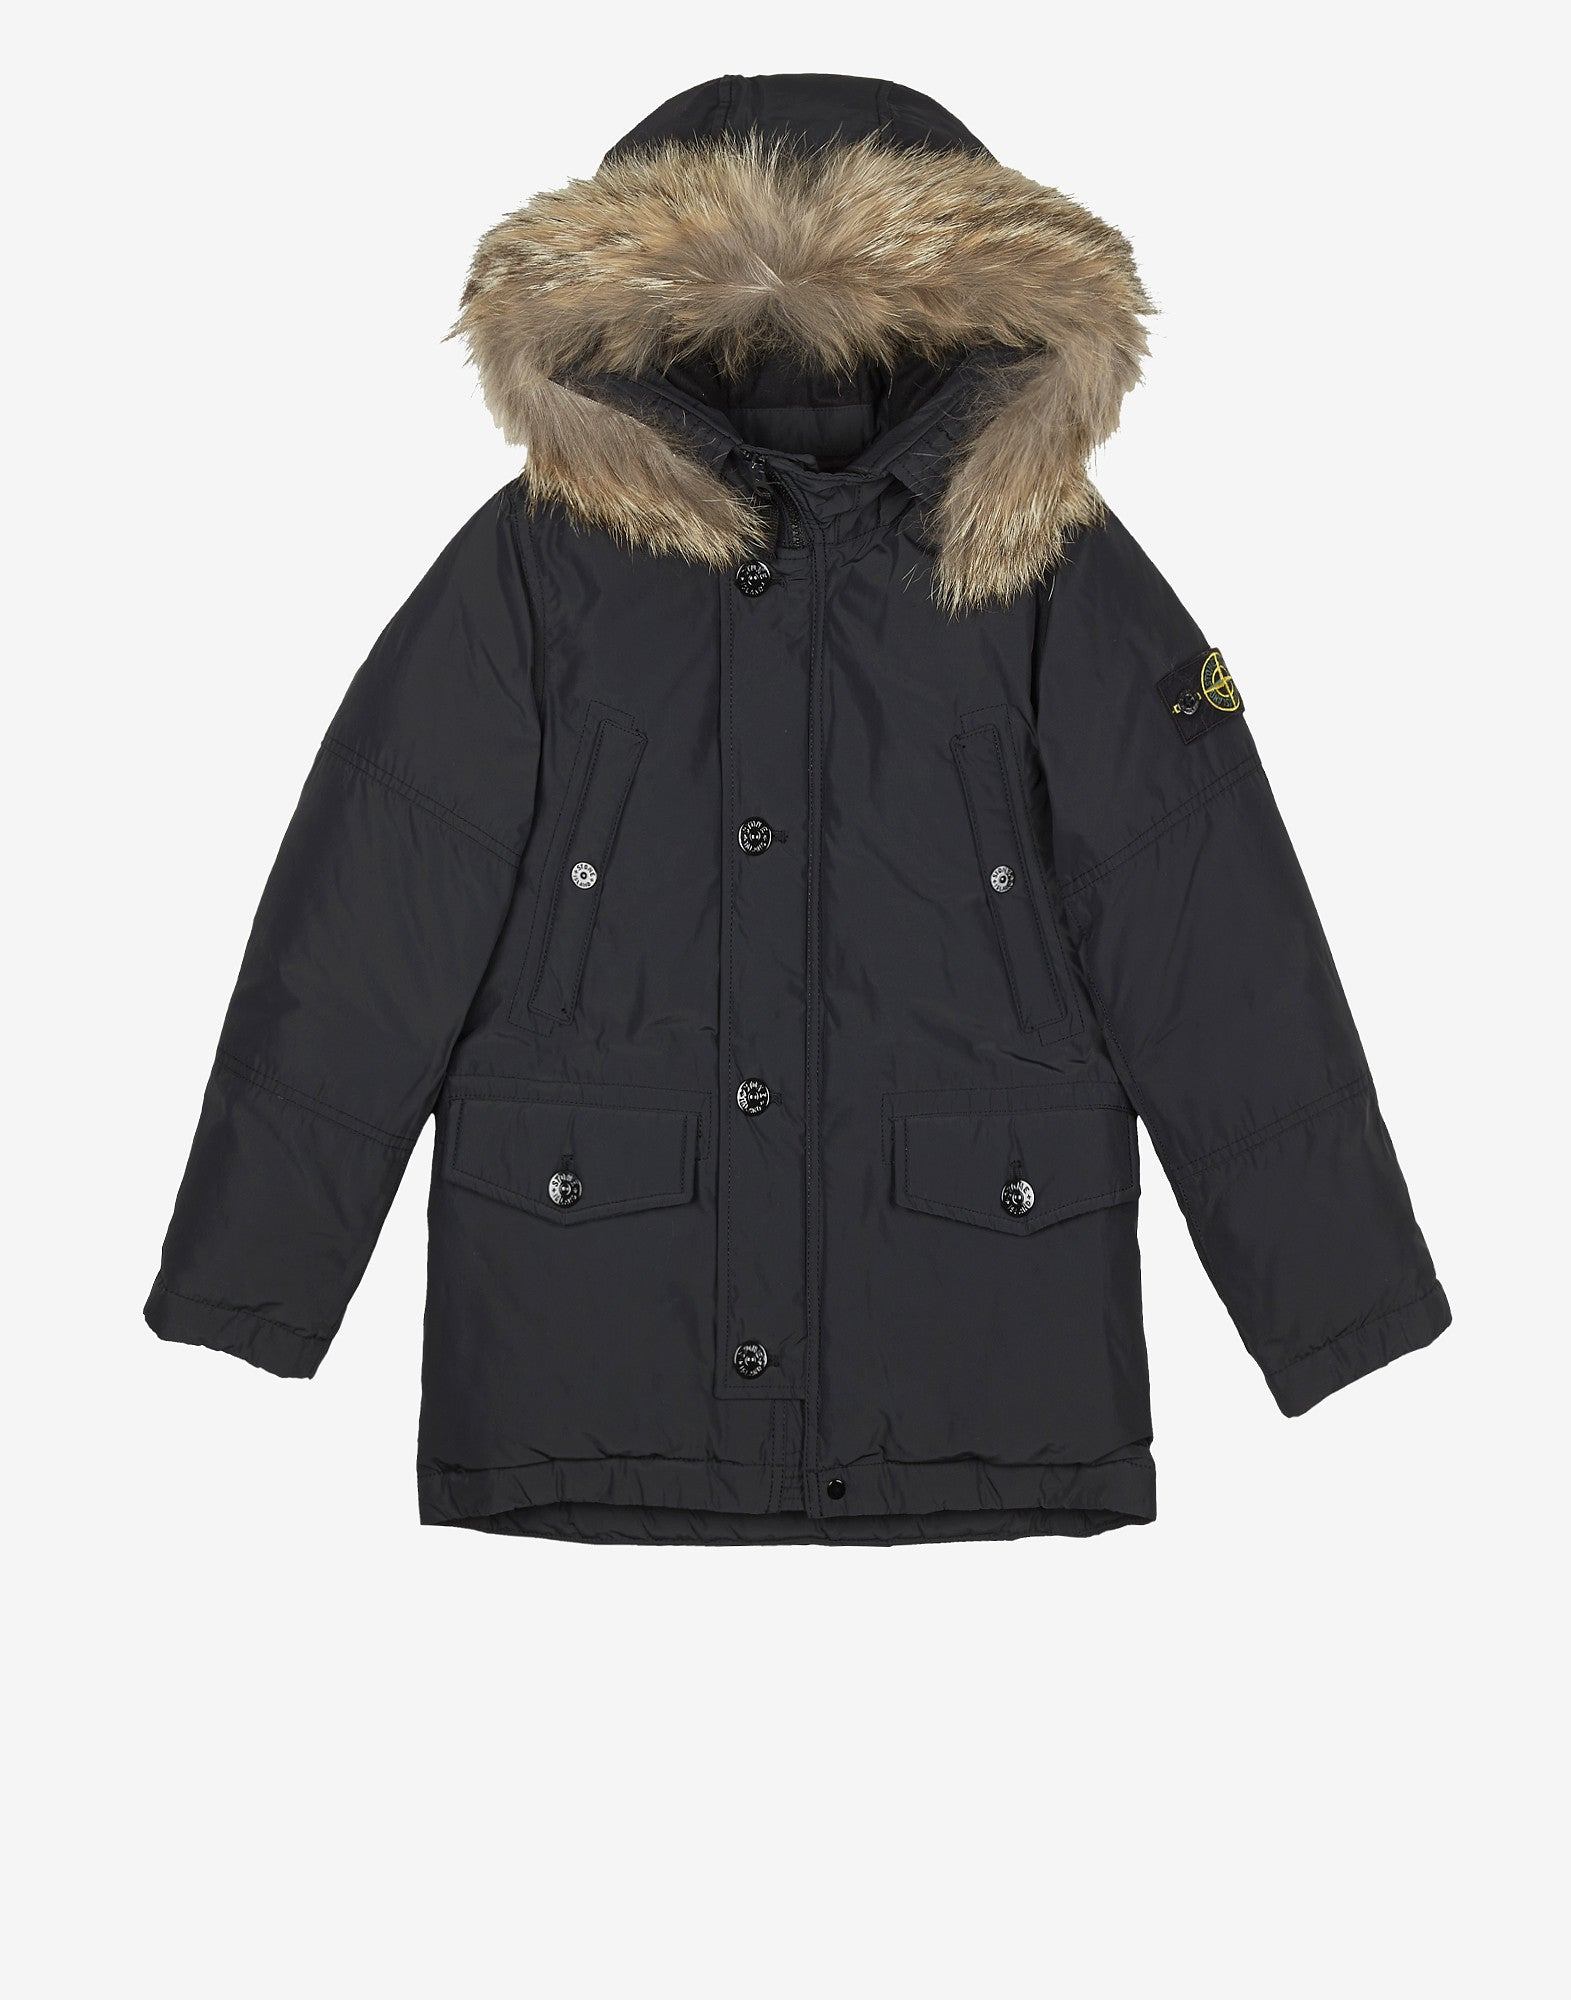 Stone Island Soft Shell: Stone Island Factory Outlet London